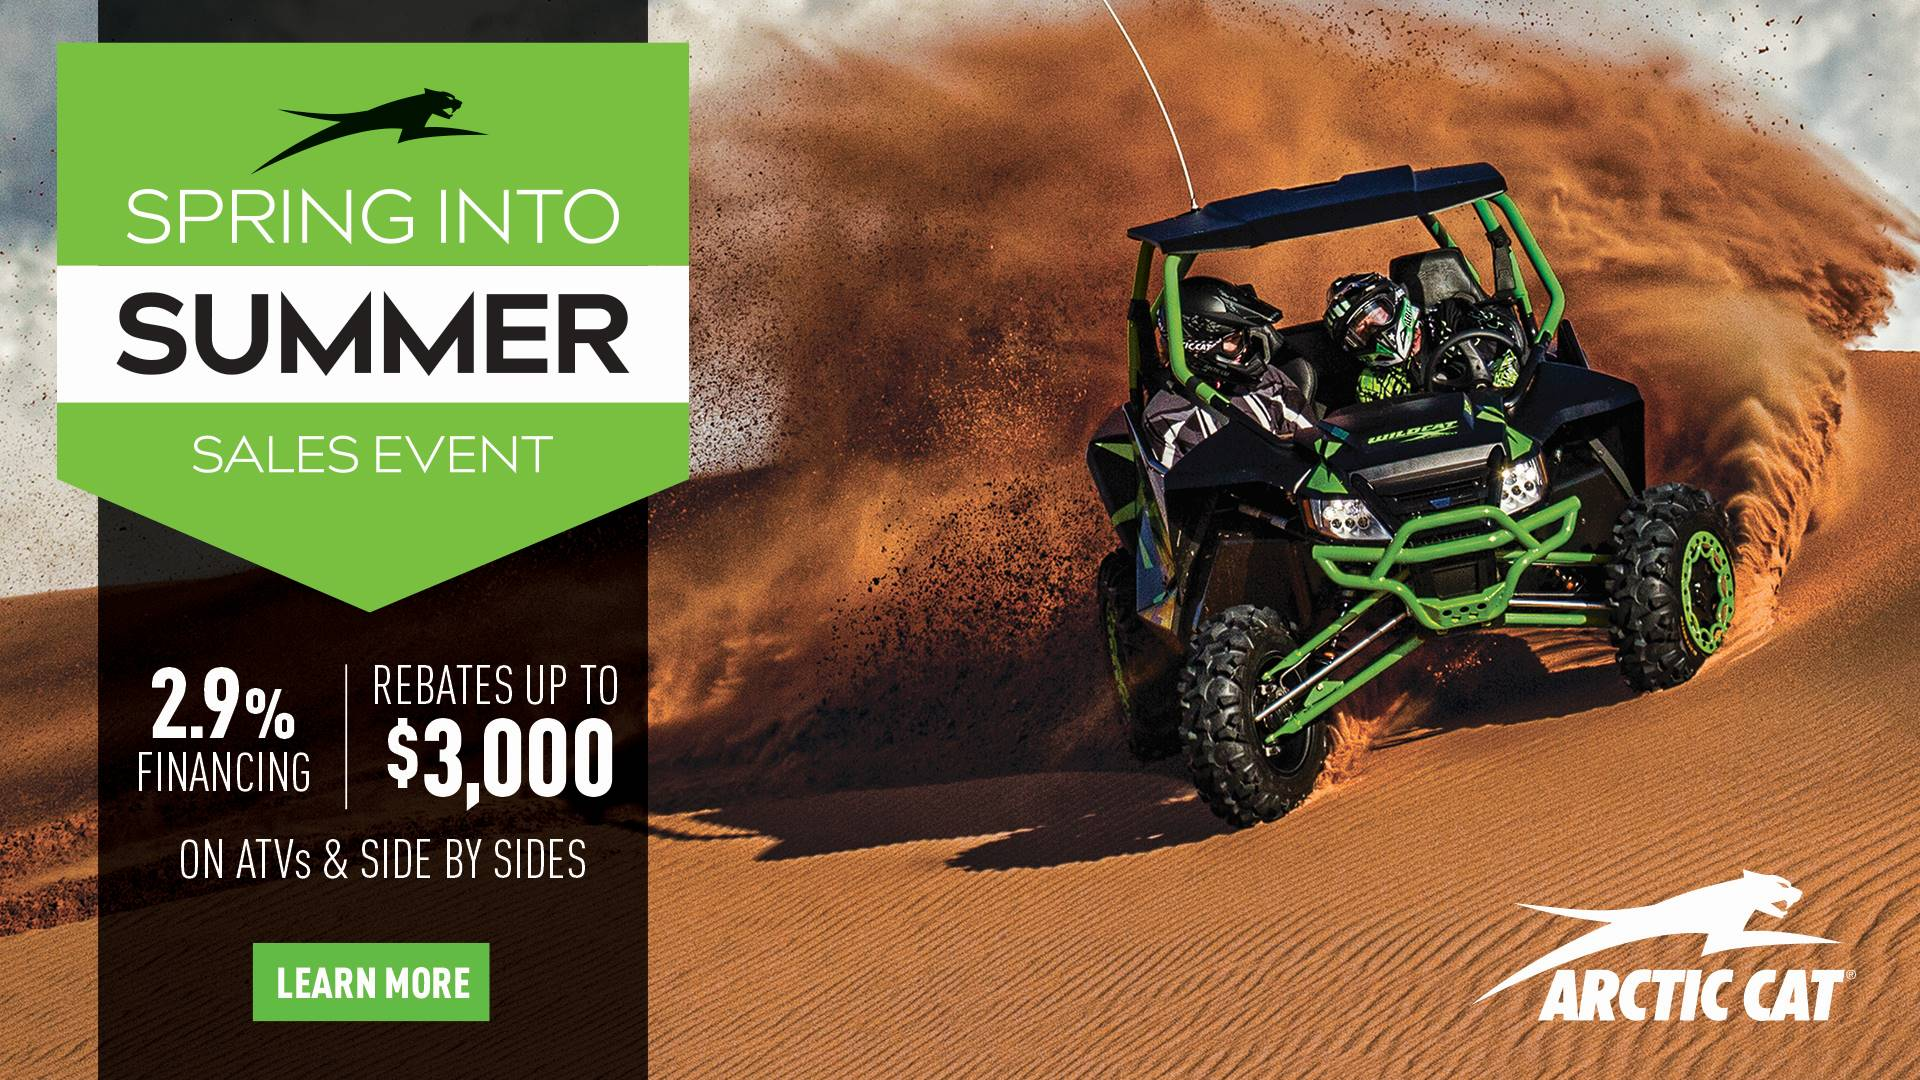 Arctic Cat - Spring Into Summer Sales Event - SxSs - MY2015-2016